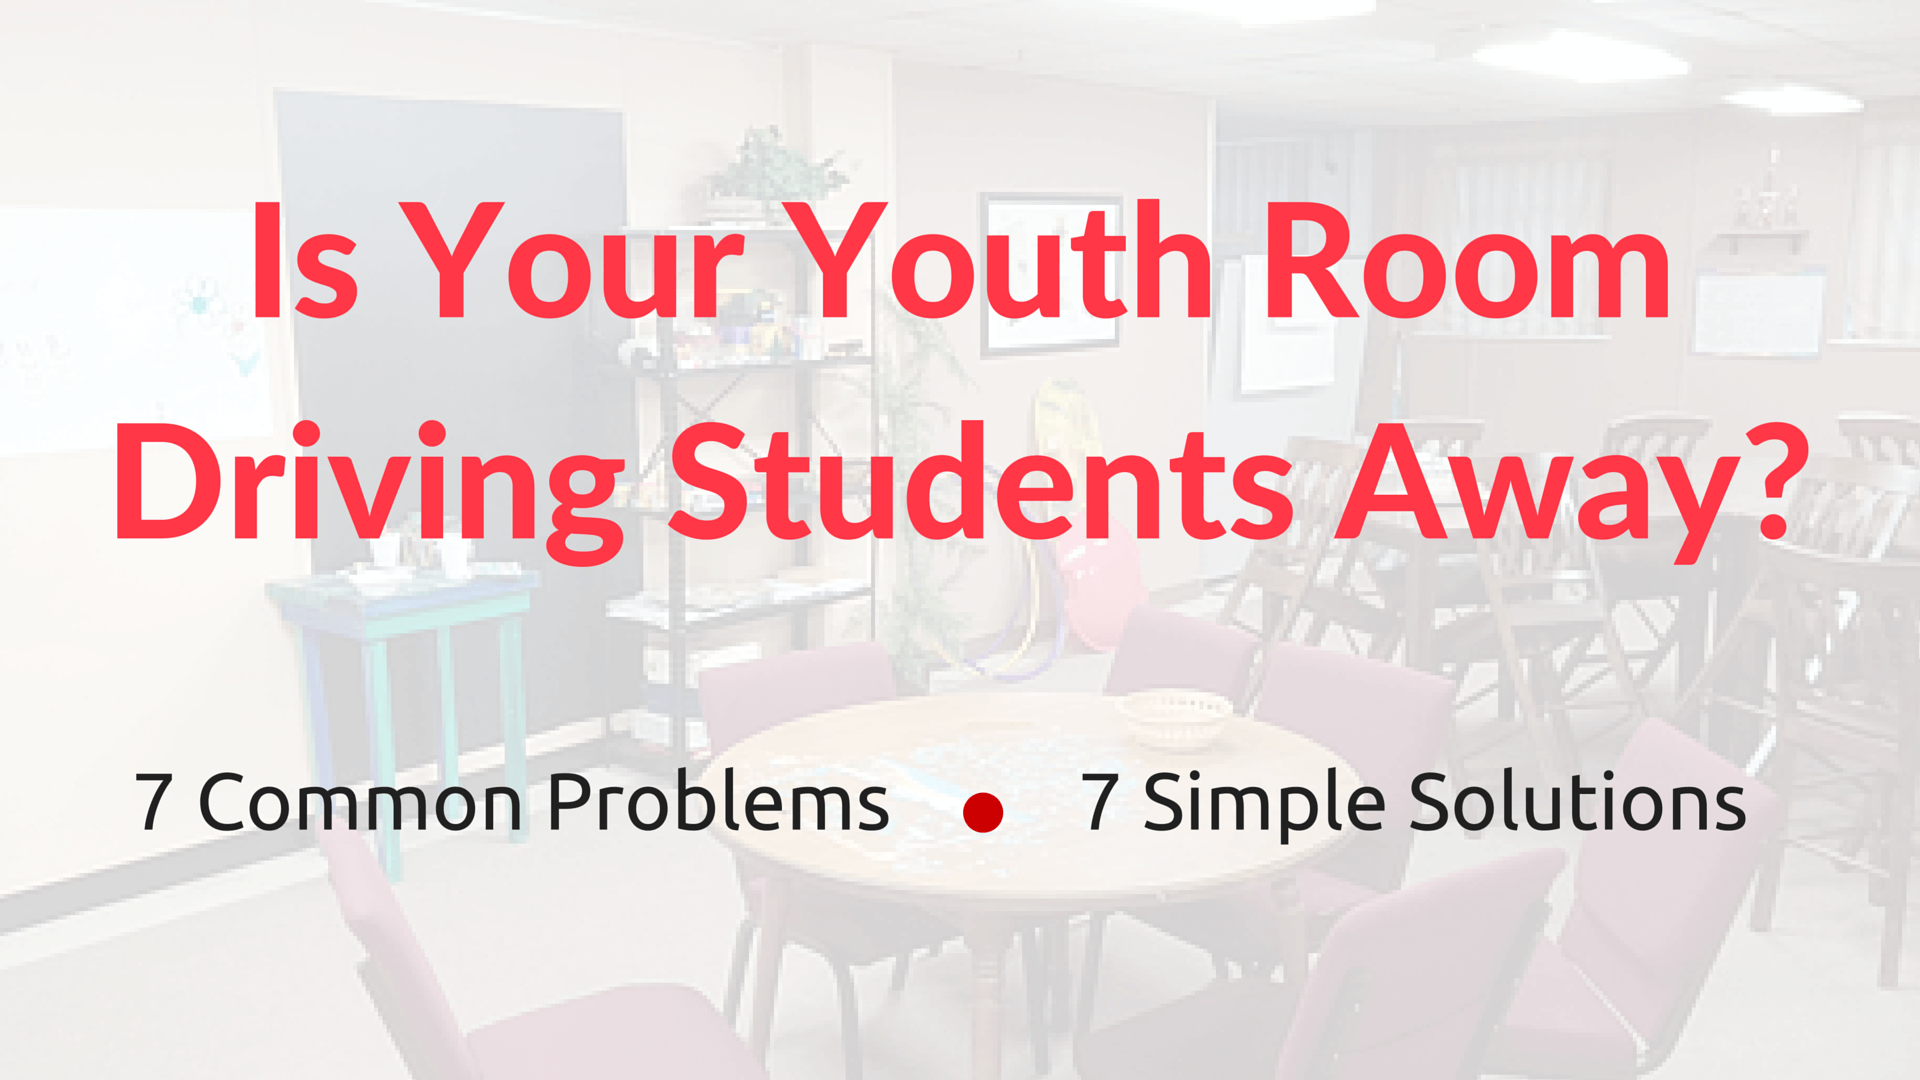 Is Your Youth Room Driving Students Away